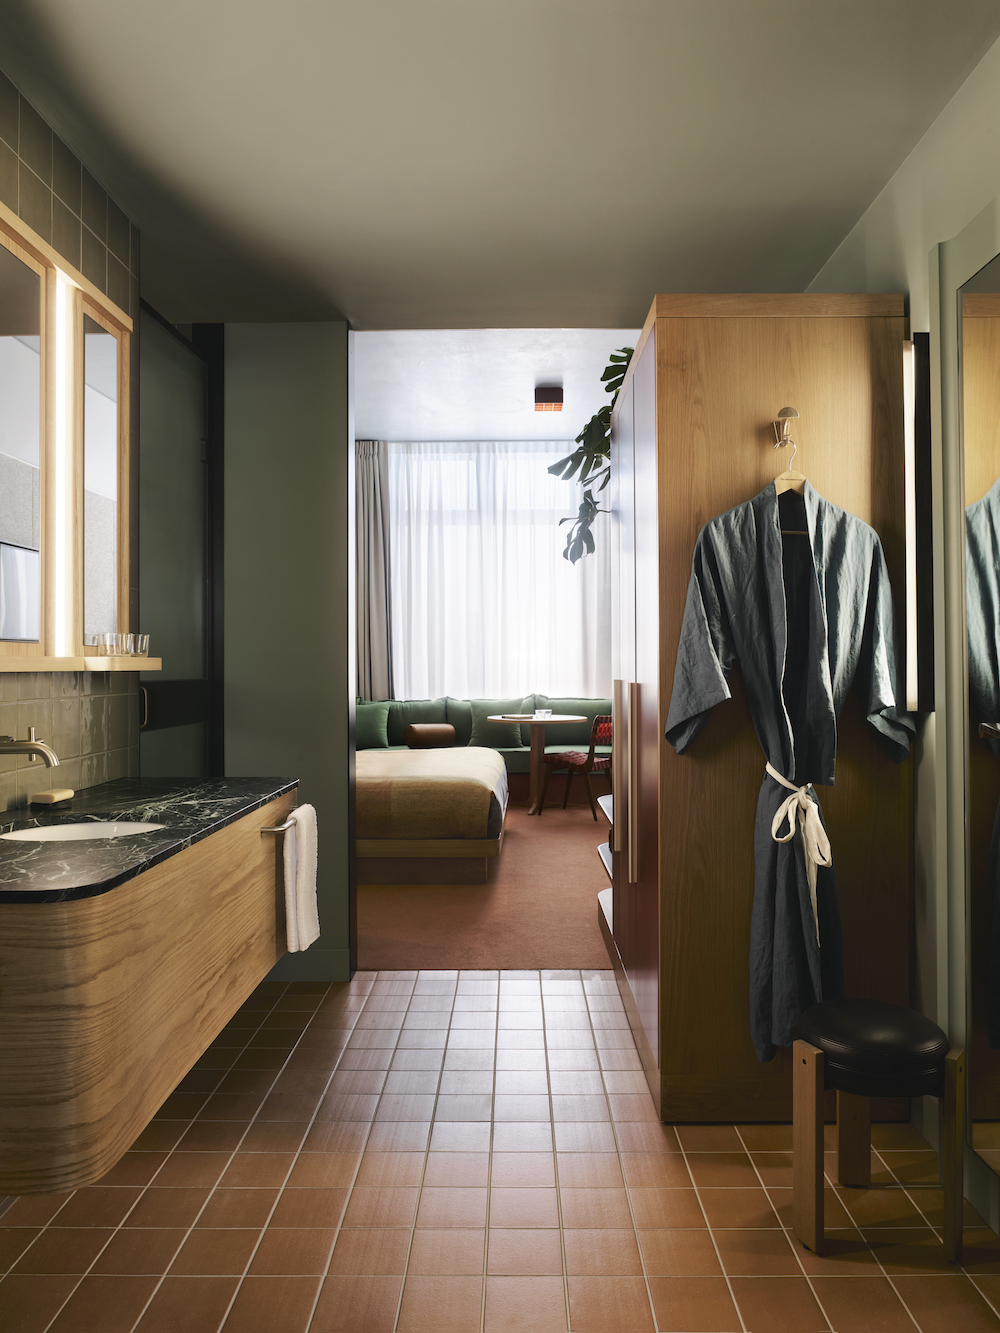 An open, rustic bathroom leading into the guestroom